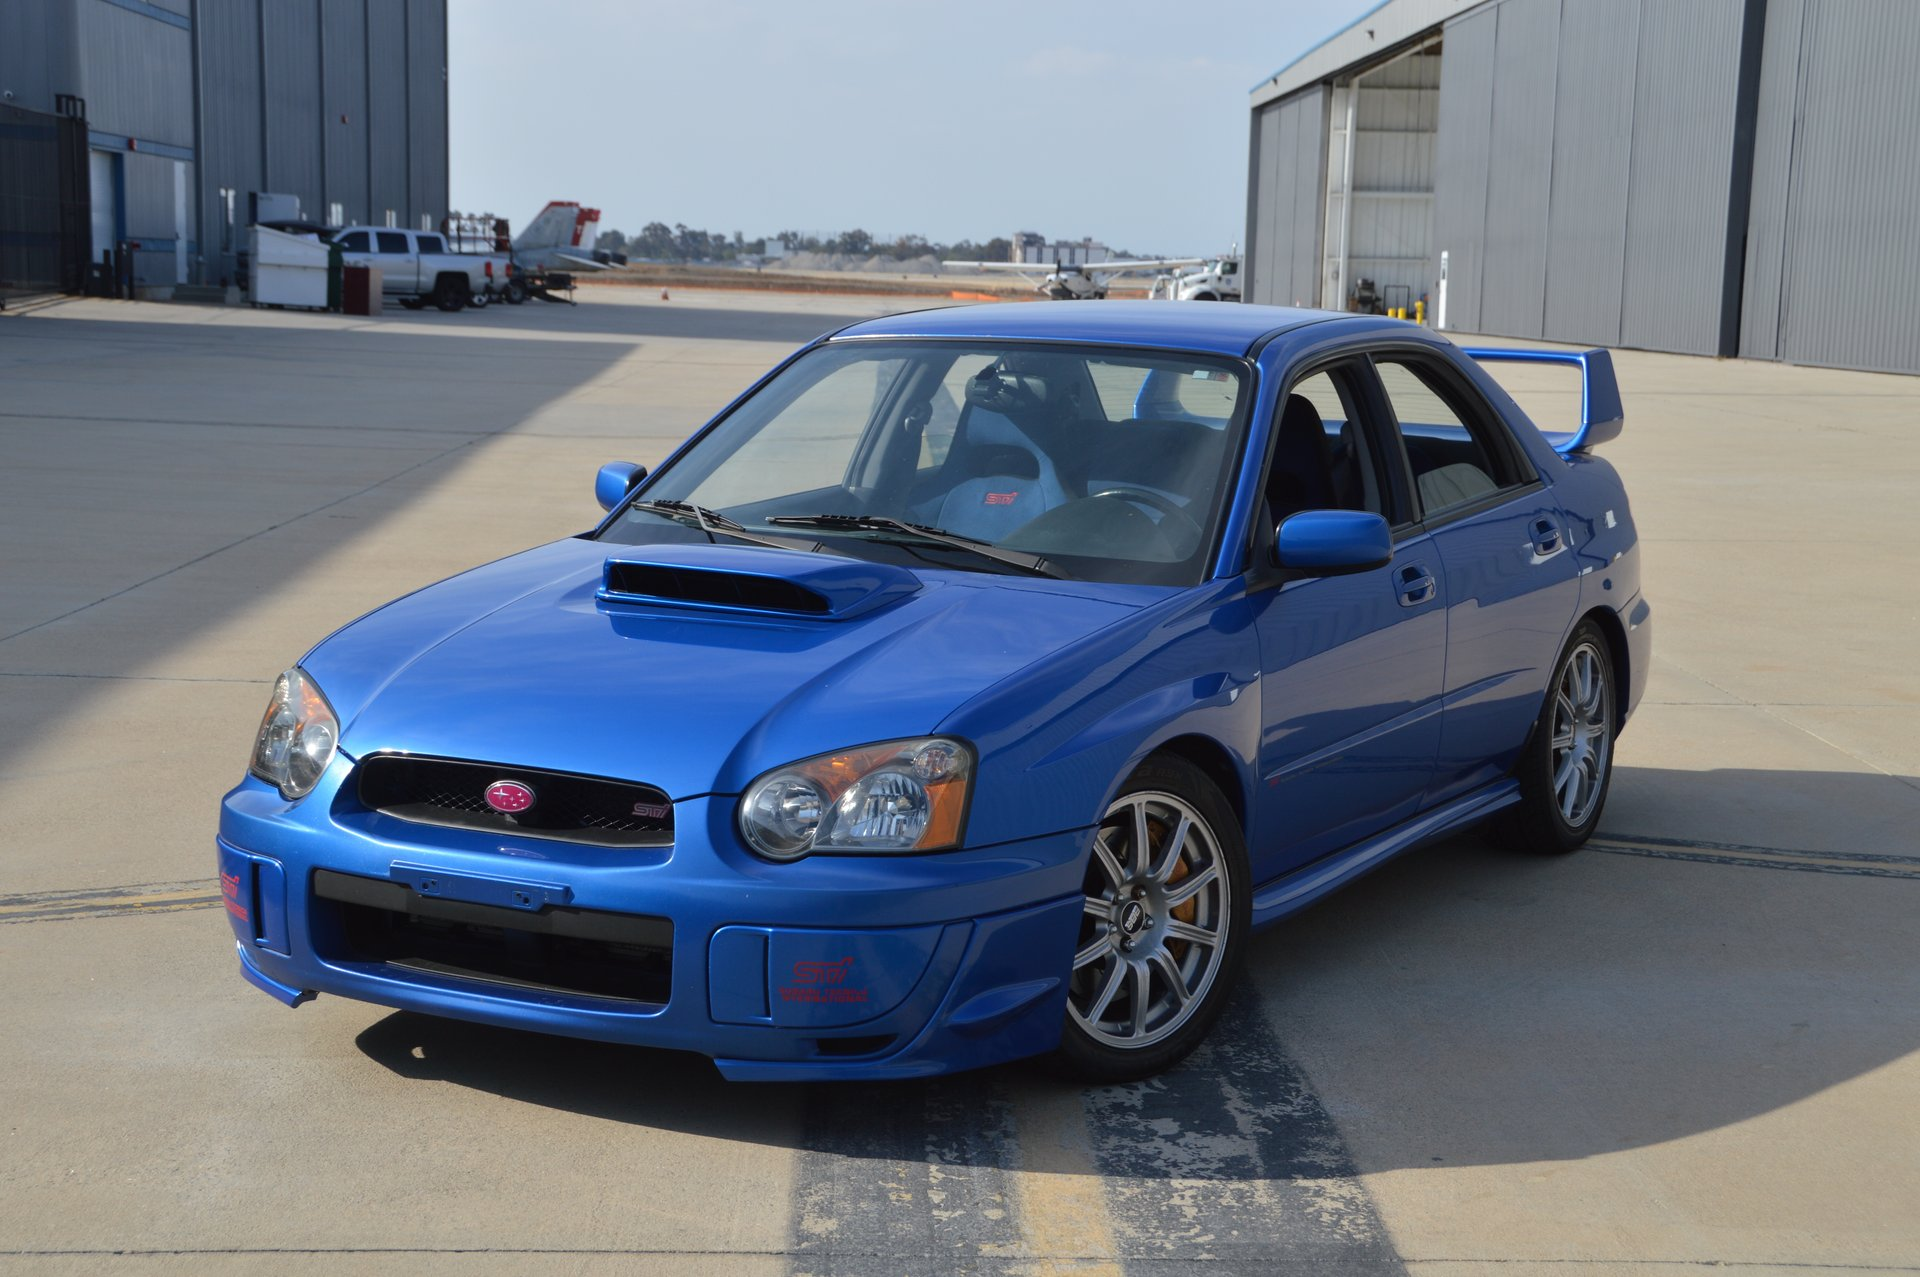 2004 Subaru WRX STI US MODEL